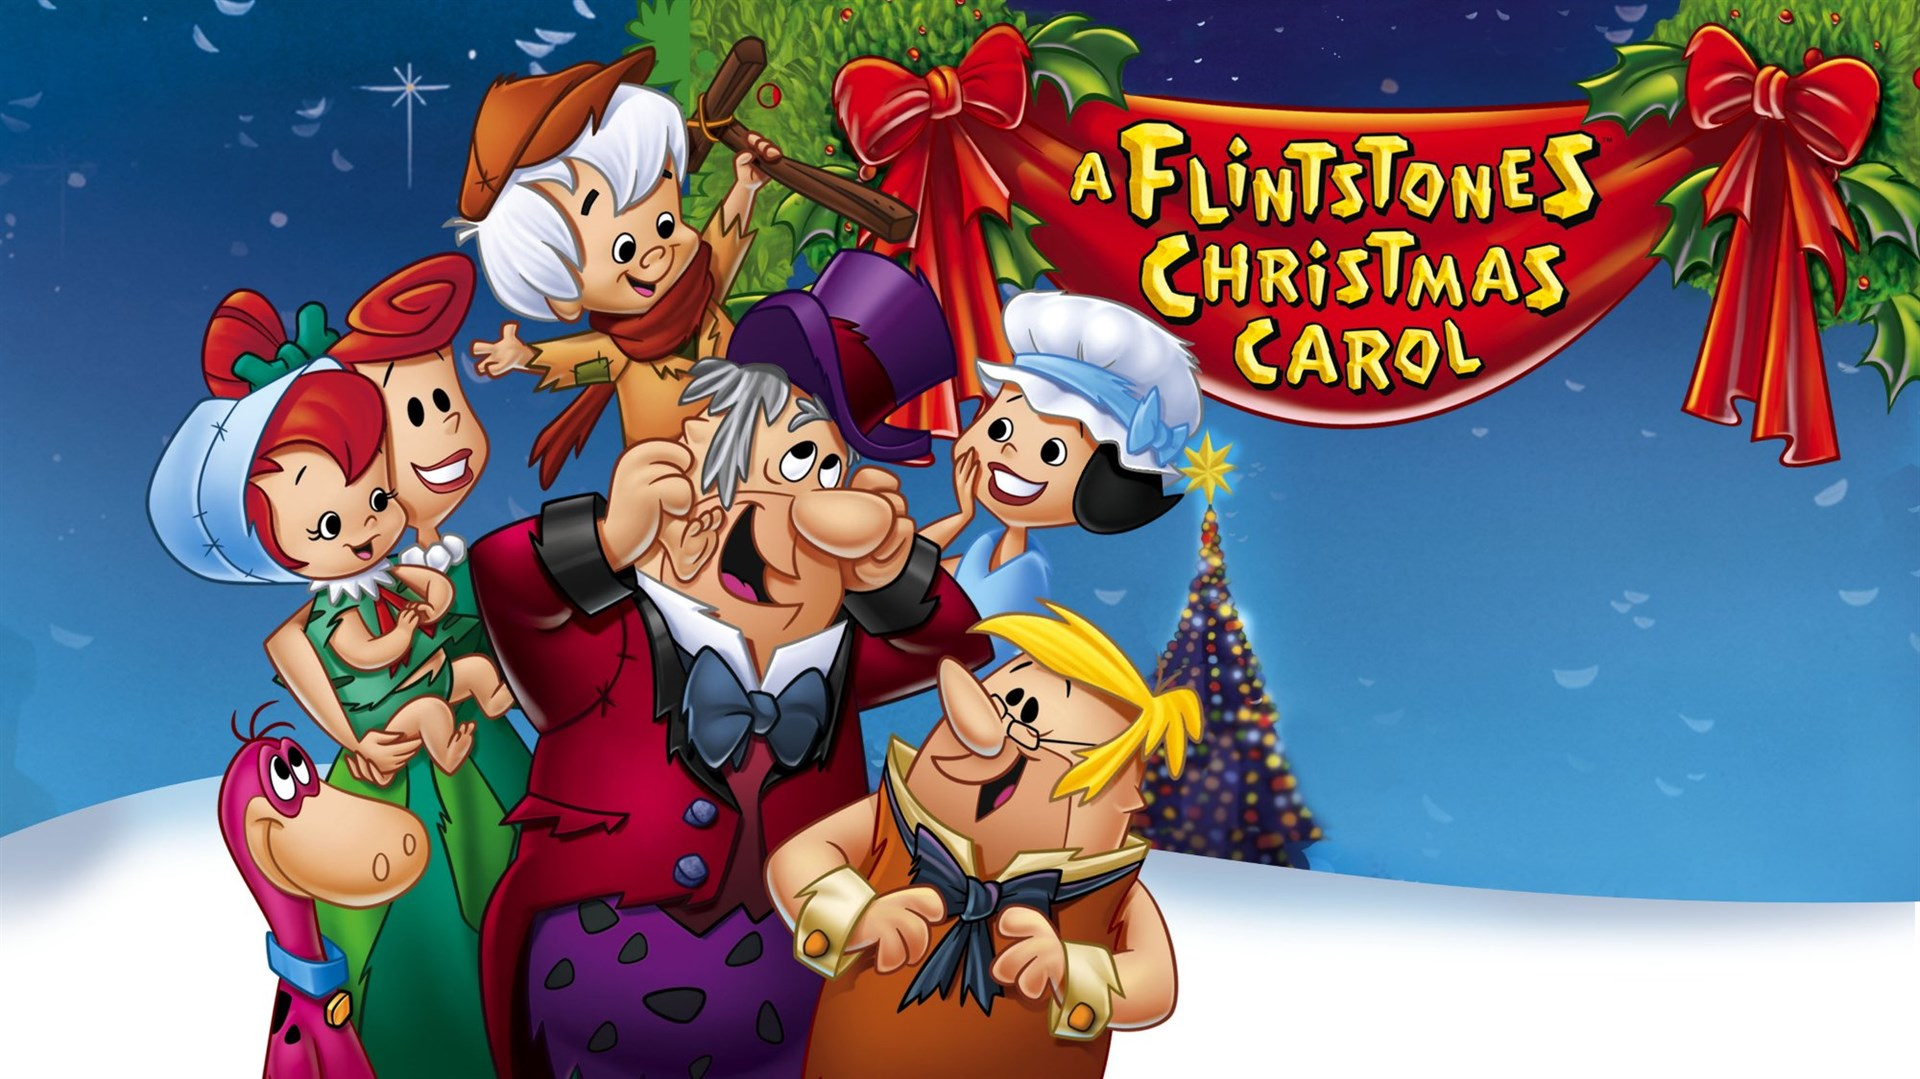 Christmas Carol.Buy The Flintstones A Flintstones Christmas Carol Microsoft